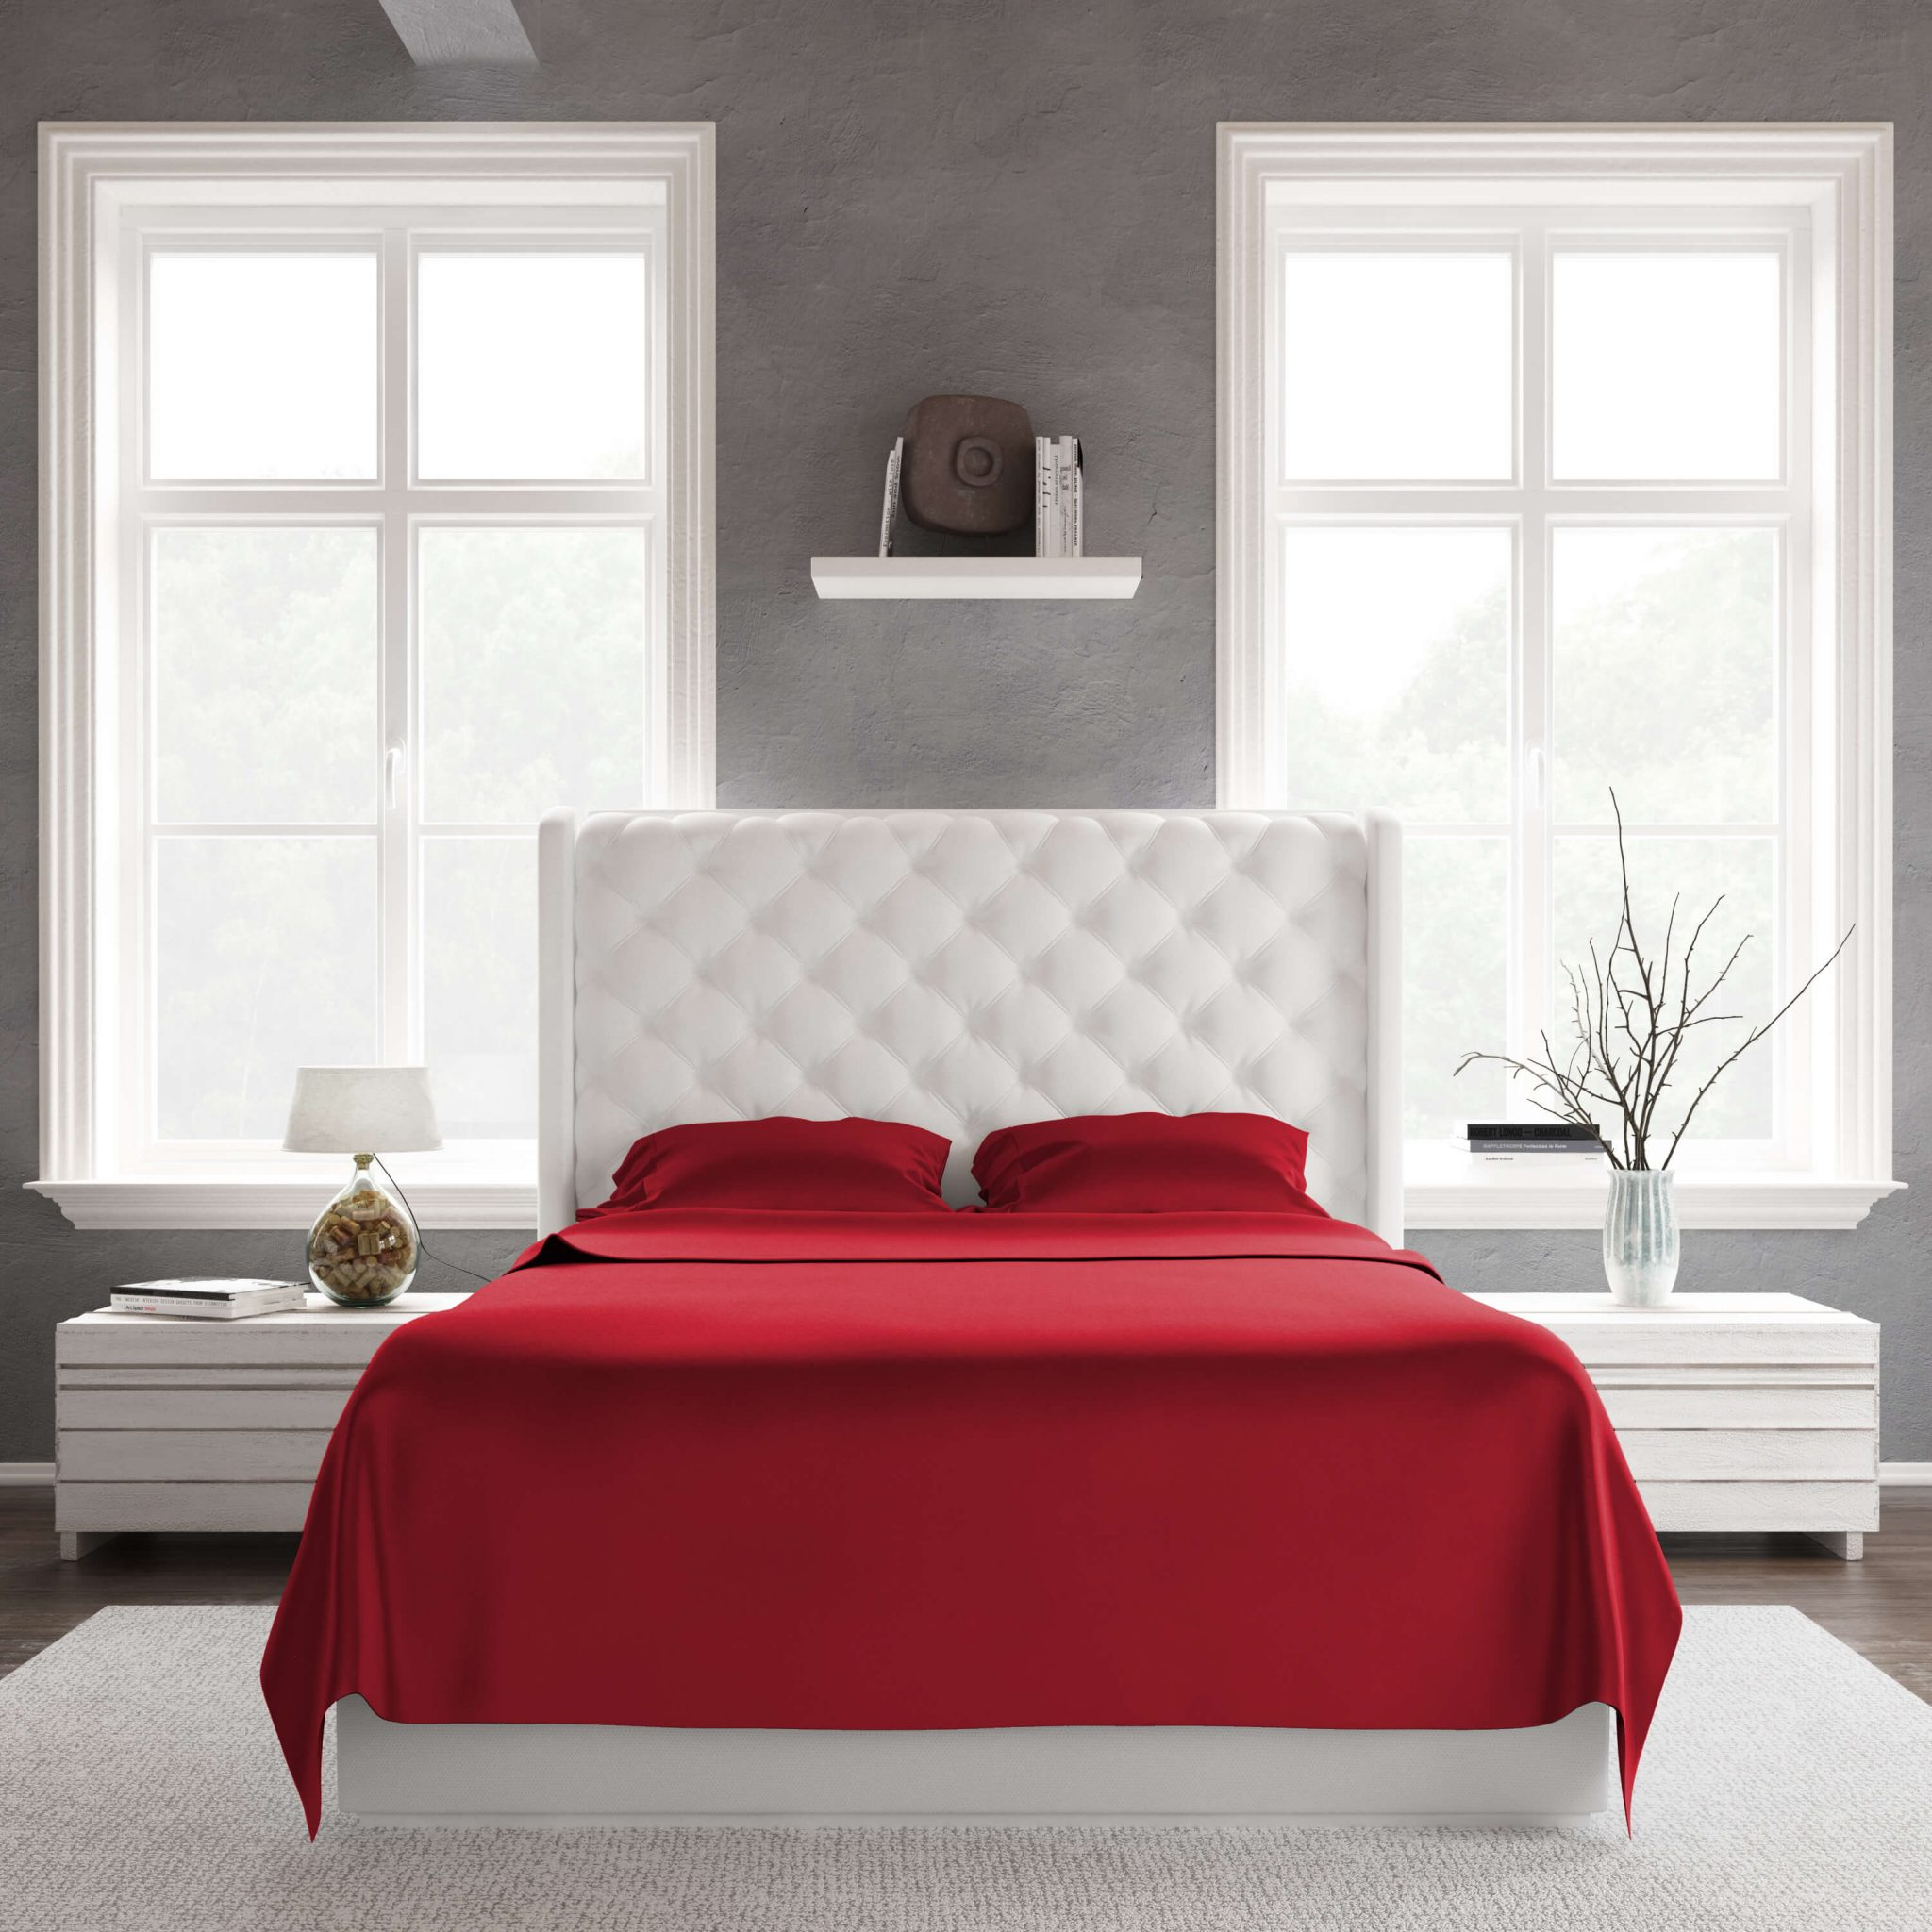 bed products smaller supreme bamboo duvets tog ratings pillows bacterial lancashire quilted lt anti textiles organic sheets bamb range roomset in various